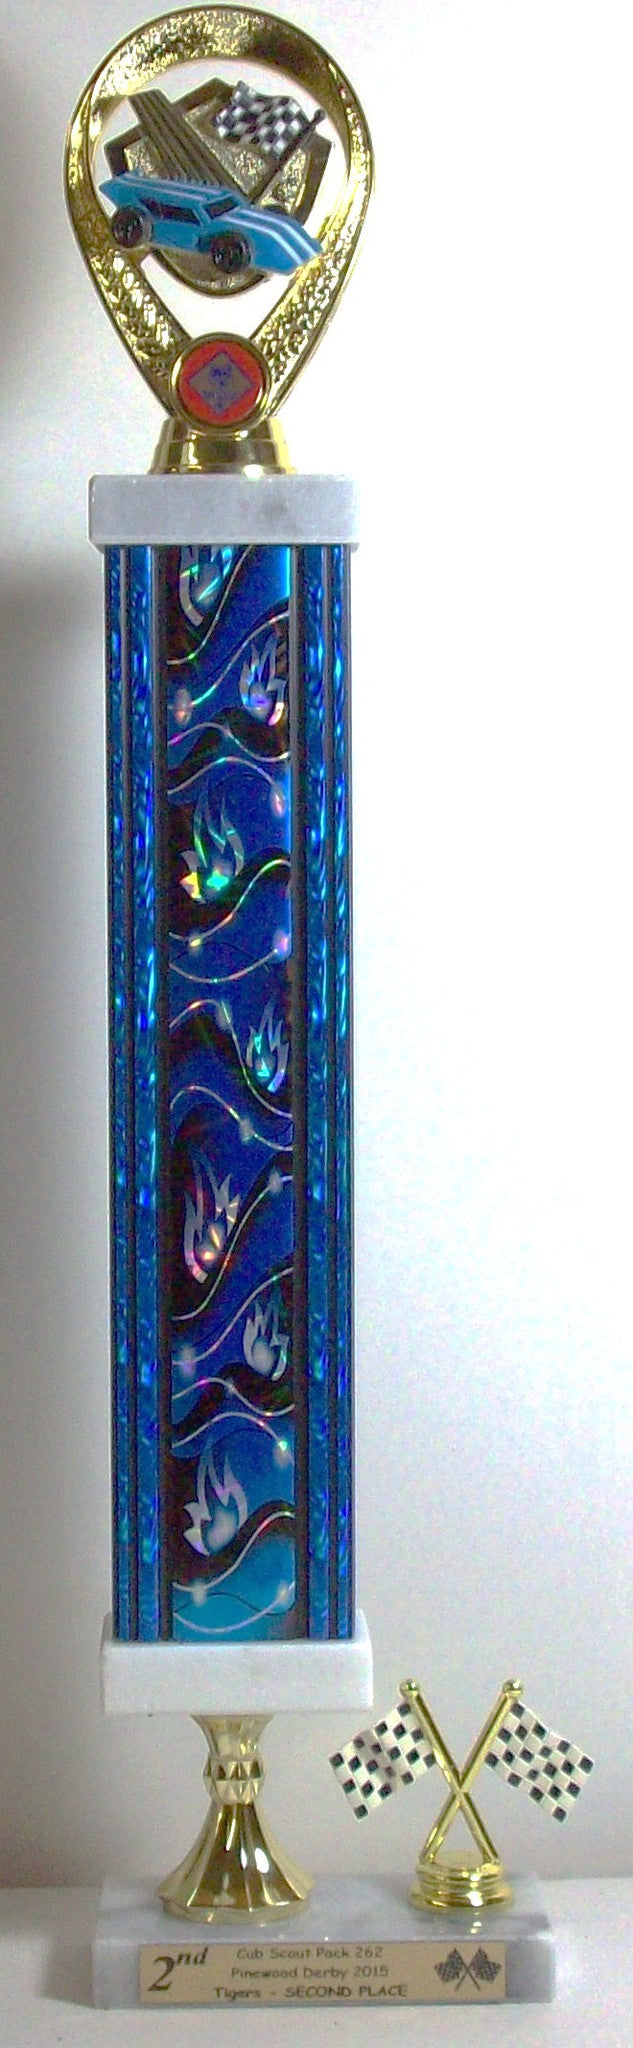 Pinewood Derby Trophy With Blue Flames